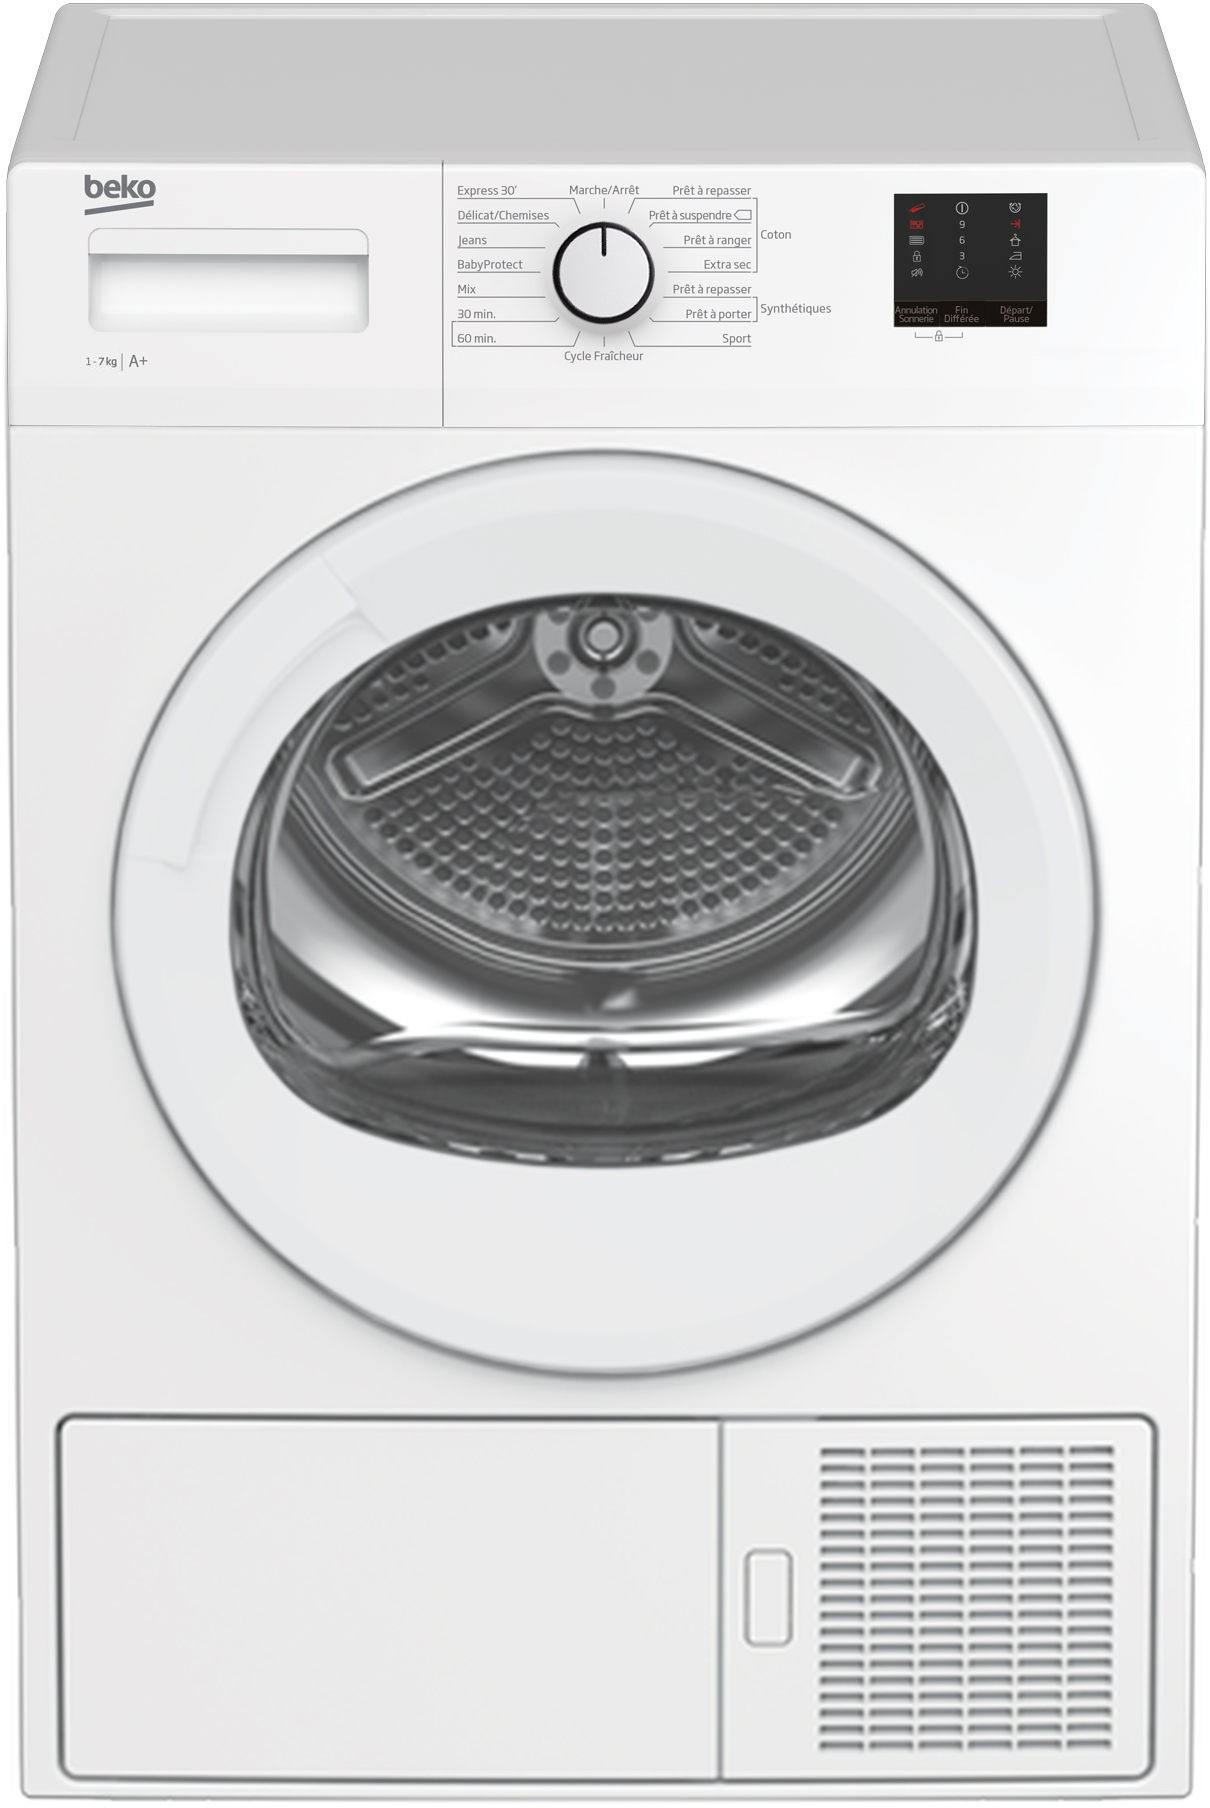 BEKO - DM 7311 GA 0 WW